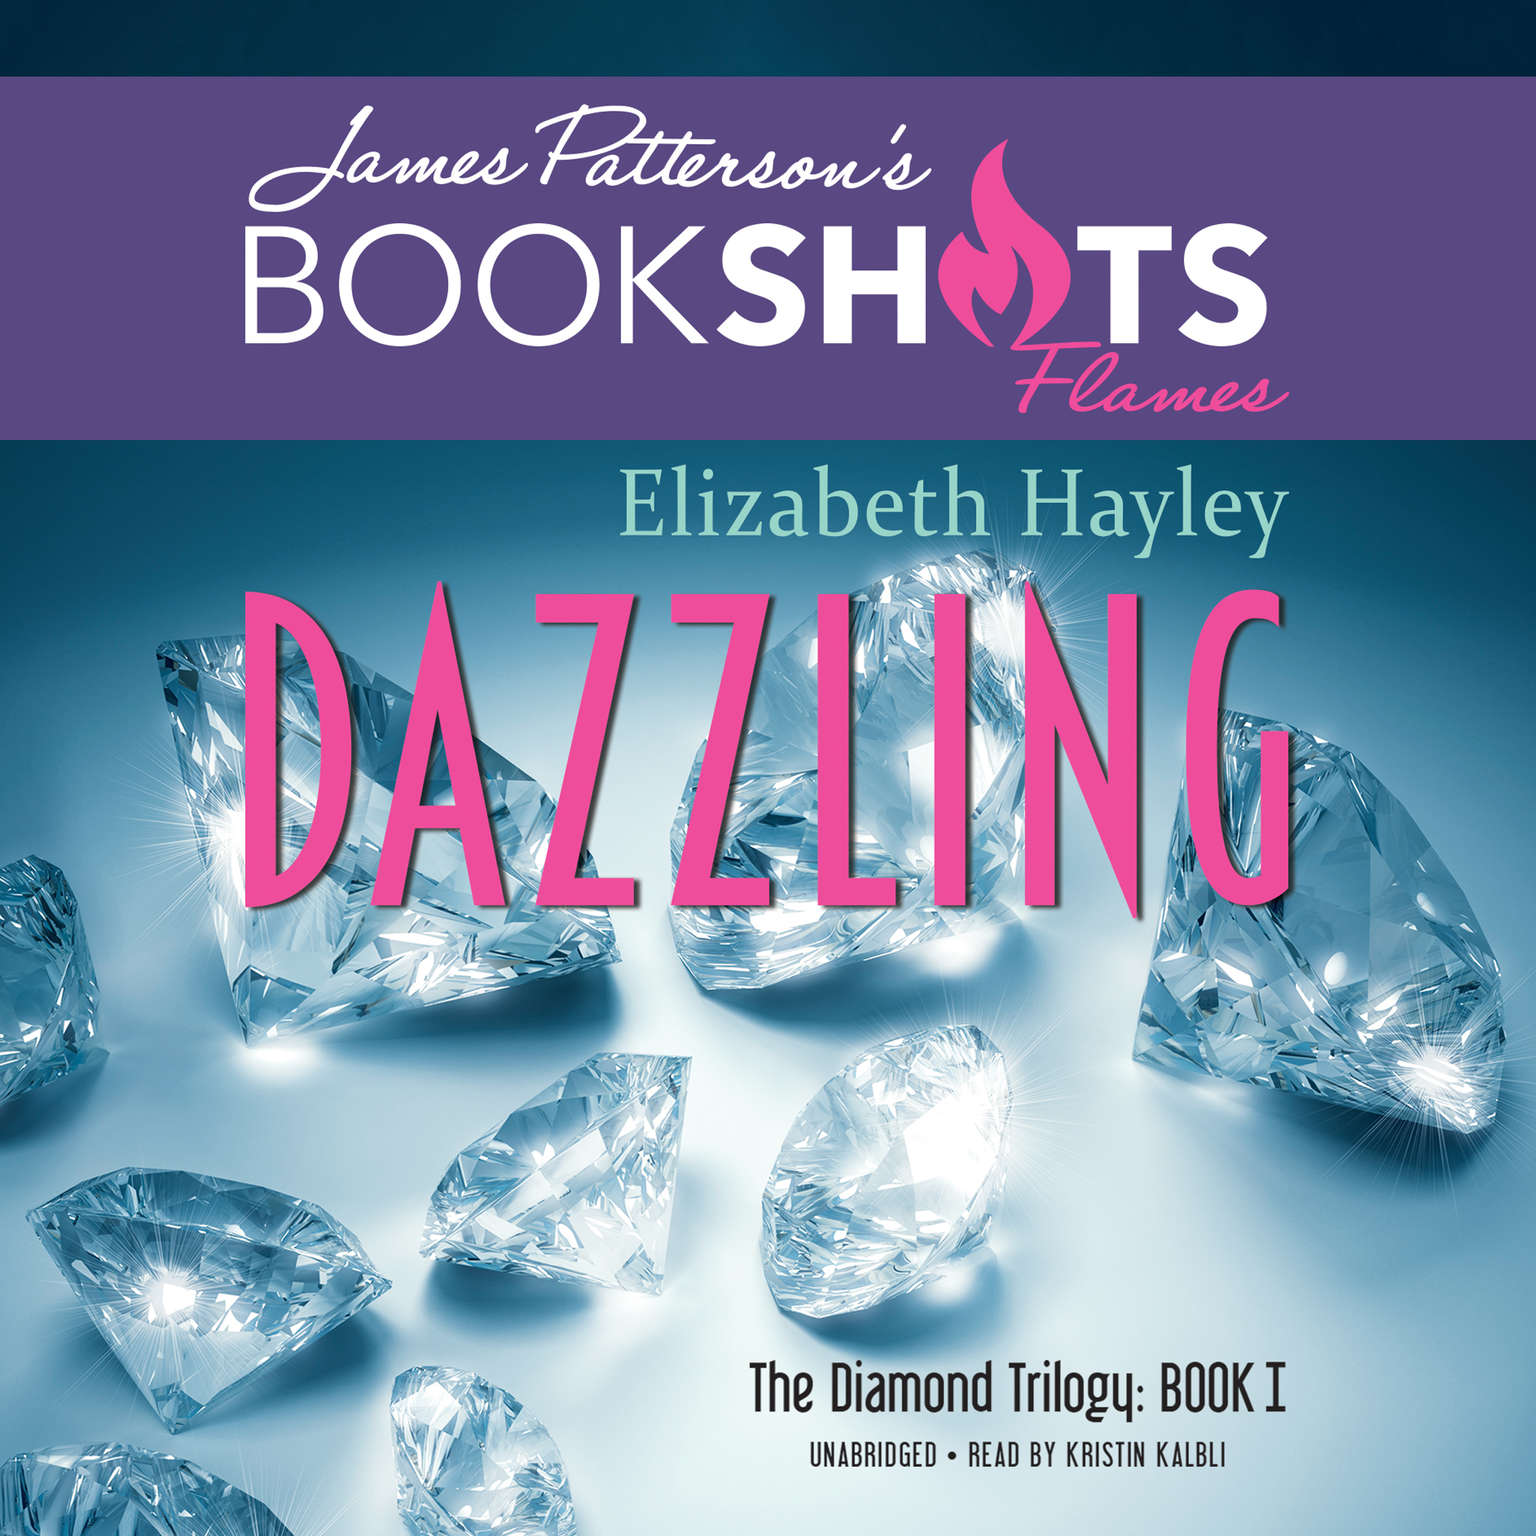 Printable Dazzling: The Diamond Trilogy, Part I Audiobook Cover Art